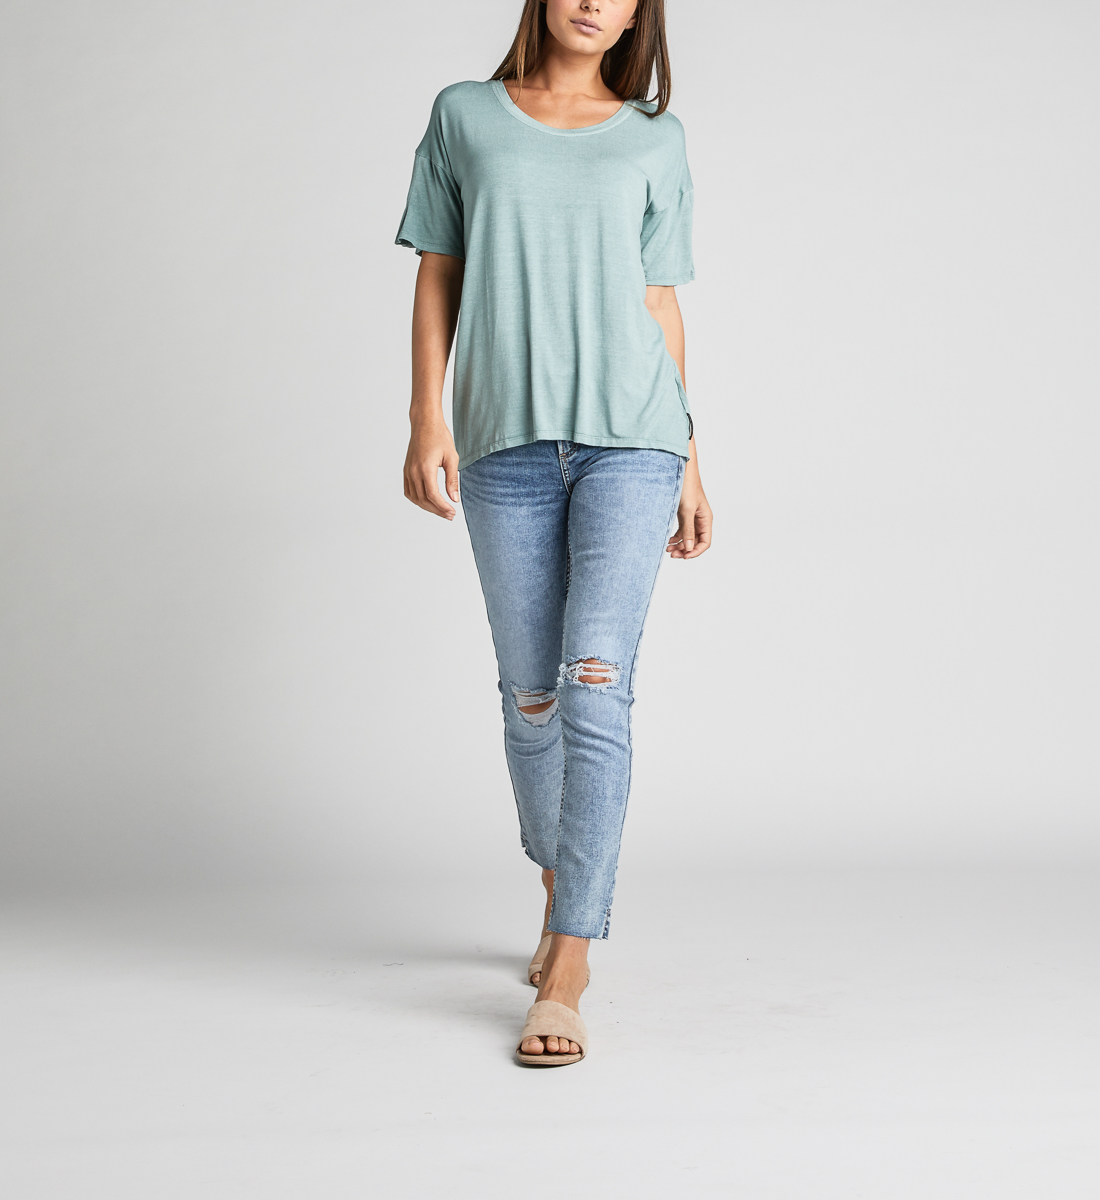 Alice Pleated-Sleeve Tee, Turquoise, hi-res